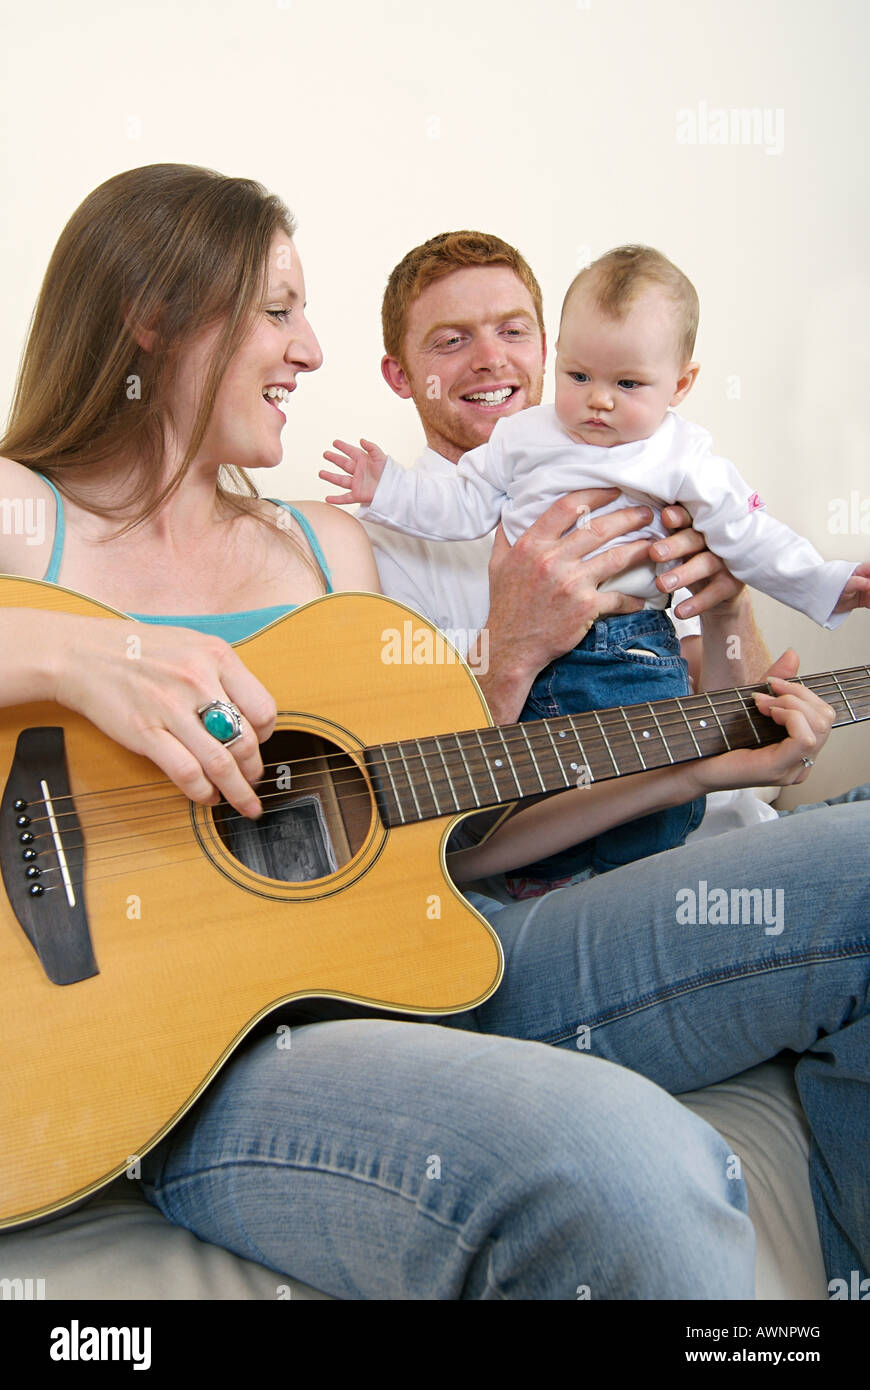 Mother playing guitar for her baby daughter - Stock Image